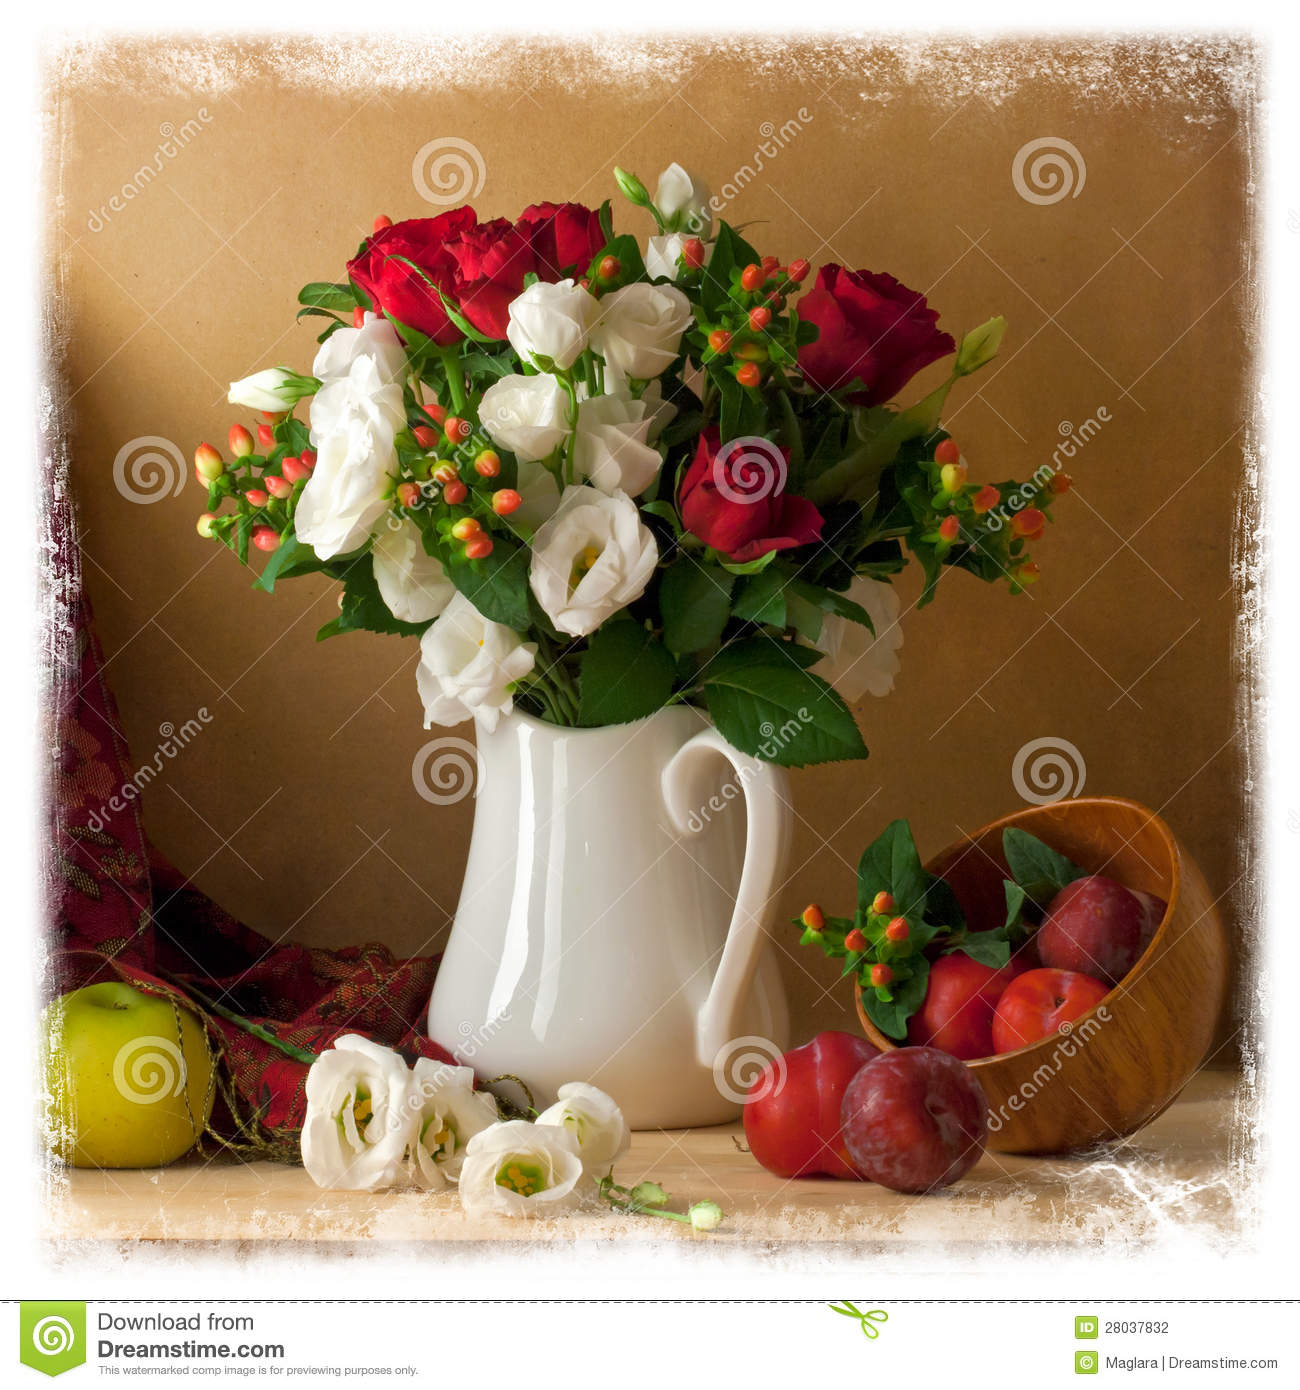 Beautiful Flower Bouquet With Fruits Stock Photo Image Of Card